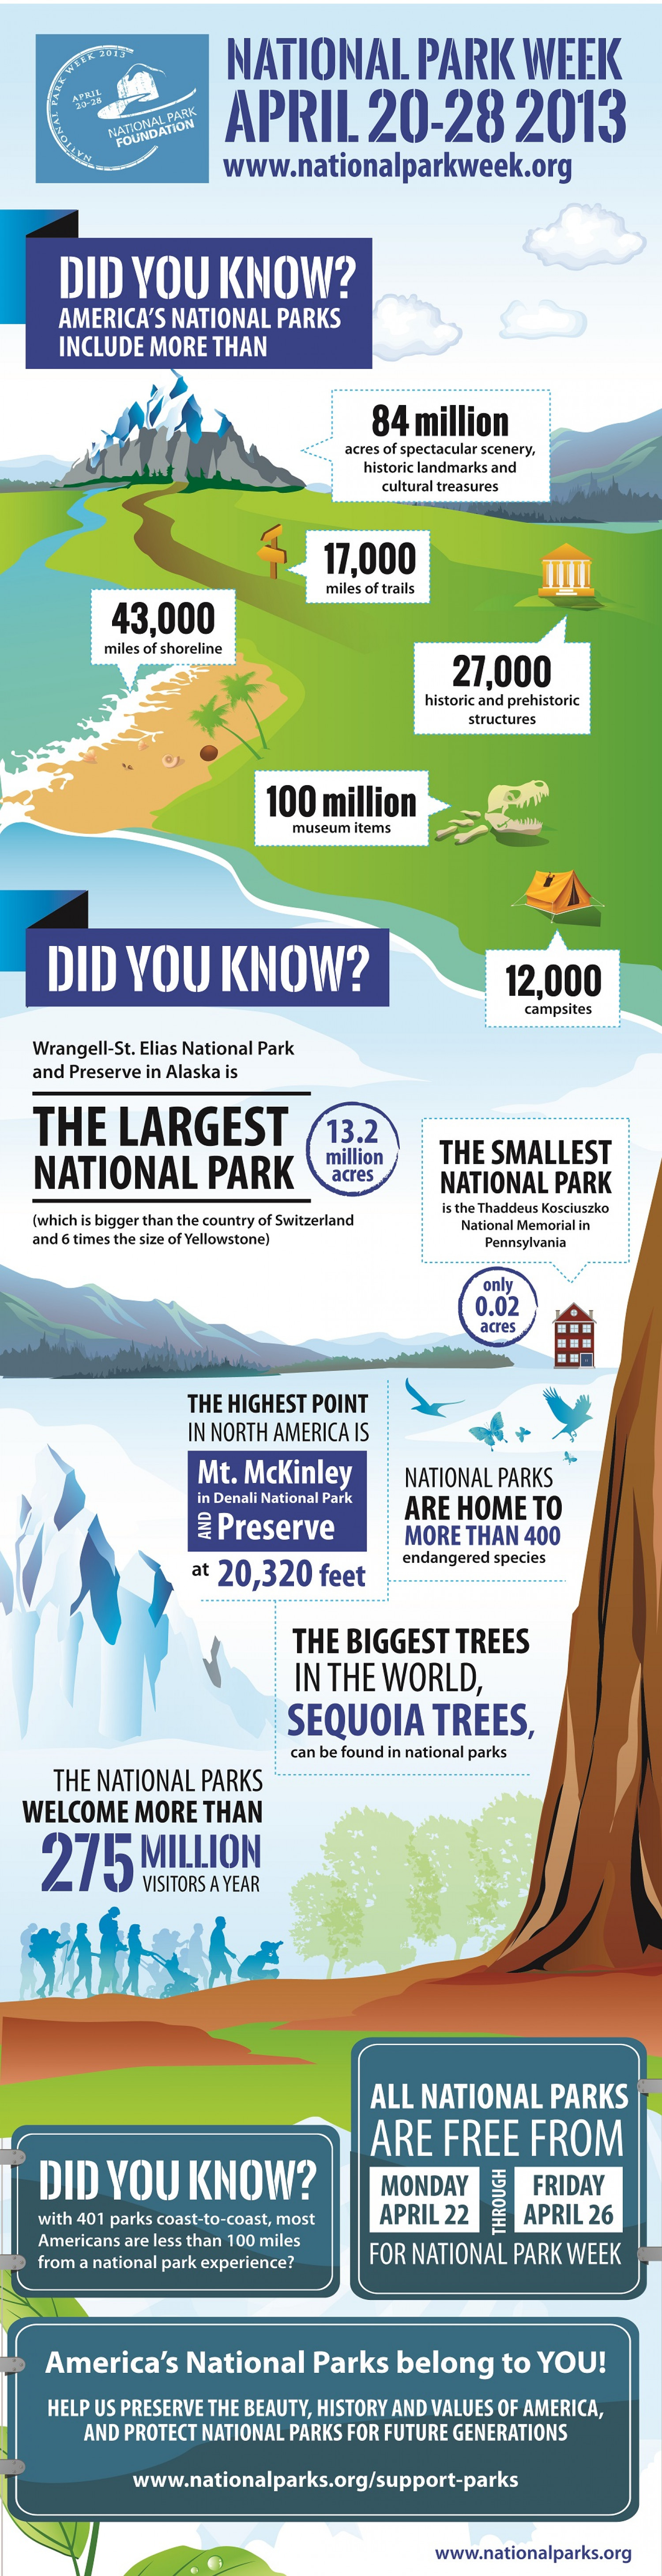 Did You Know National Park Week Is April 20-28? Infographic